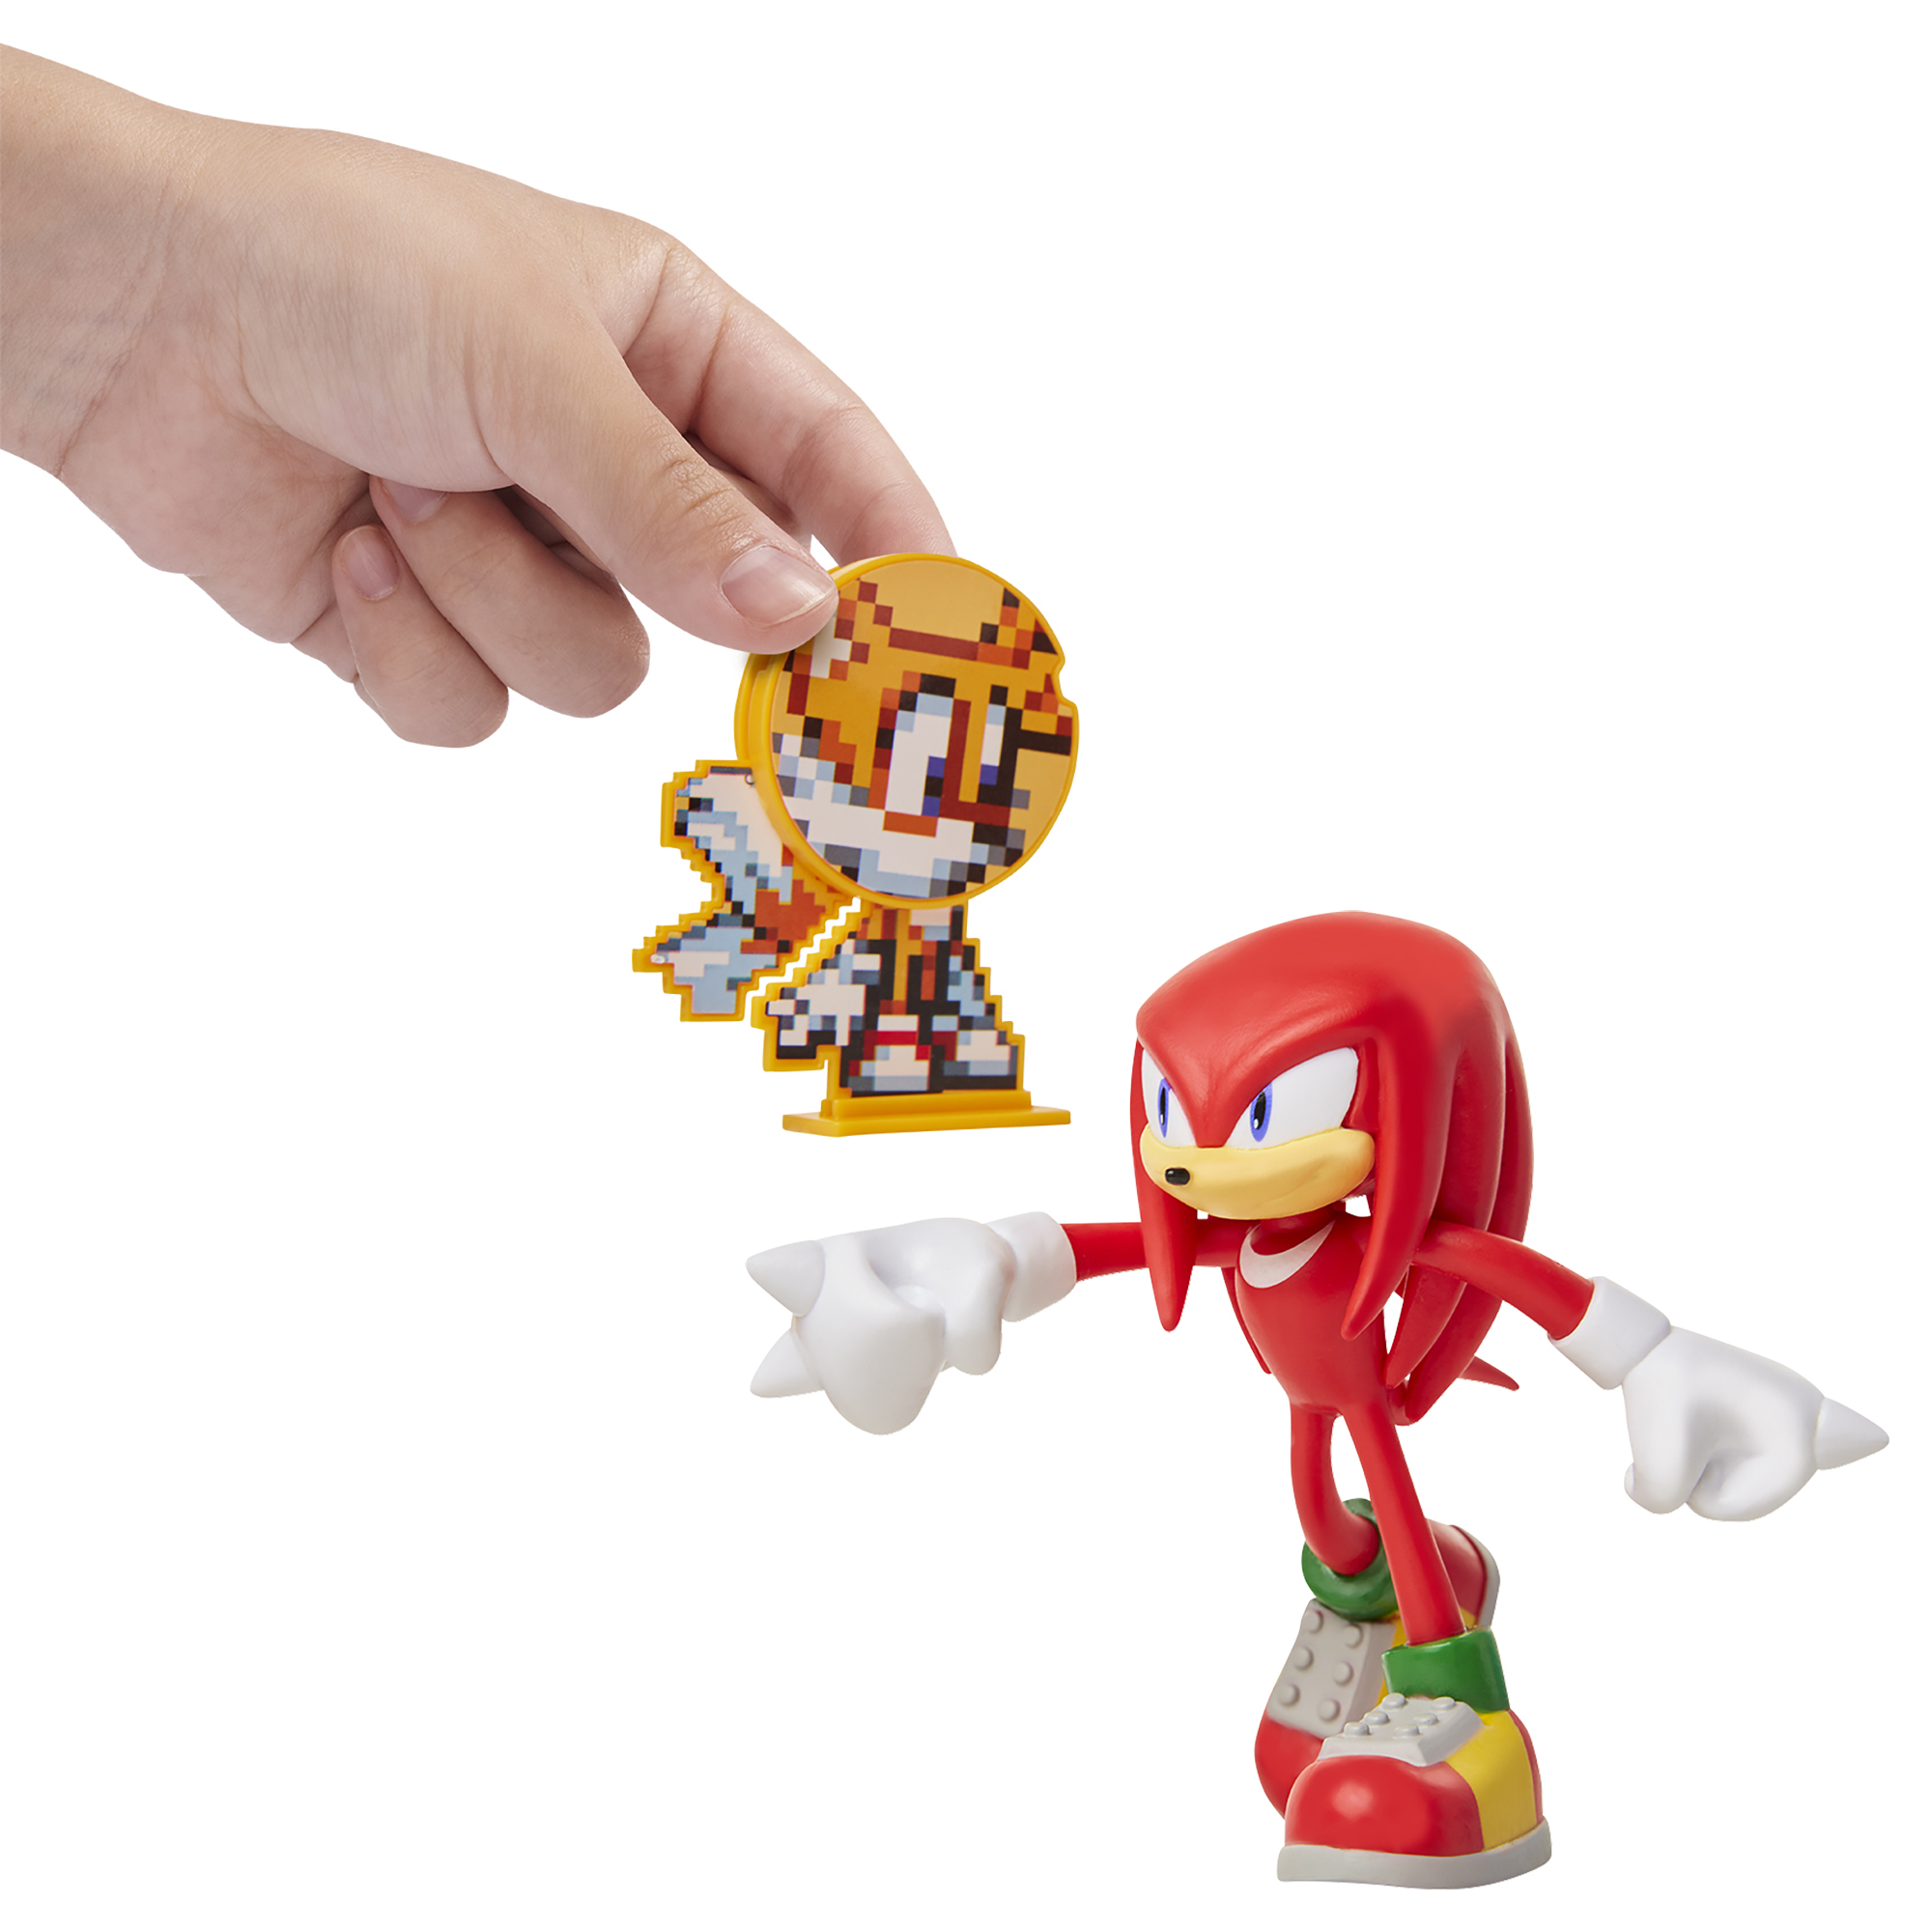 Sonic the Hedgehog - 4in Bendable Action Figures w/ accessory Wave 1 - Knuckles